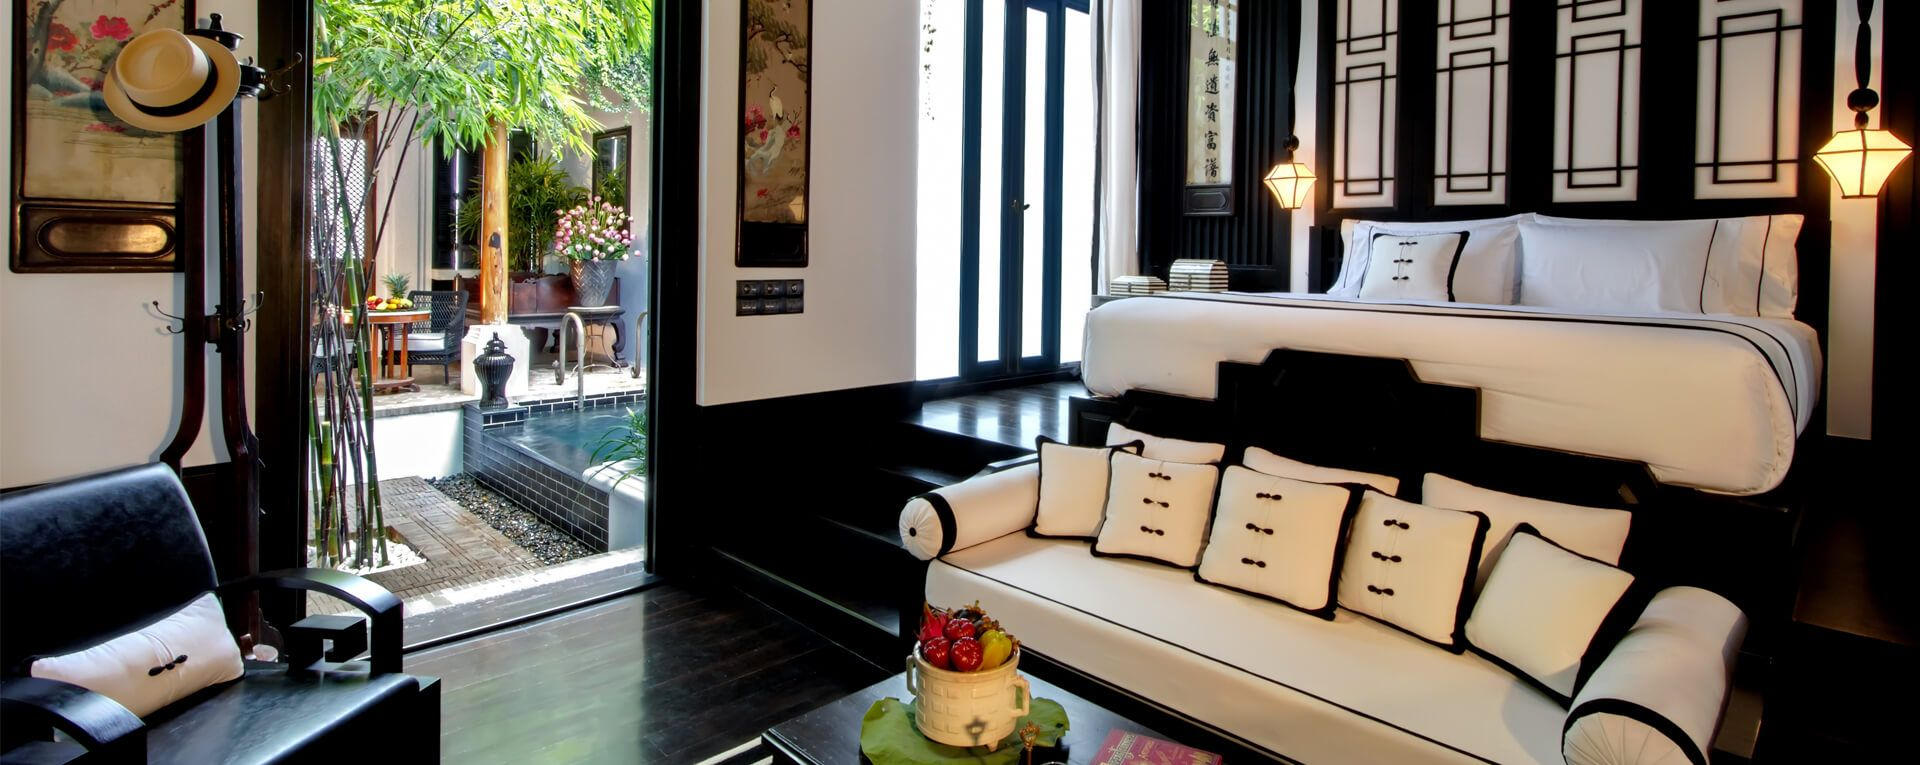 The Siam Hotel, Bangkok – An Urban Luxury Resort